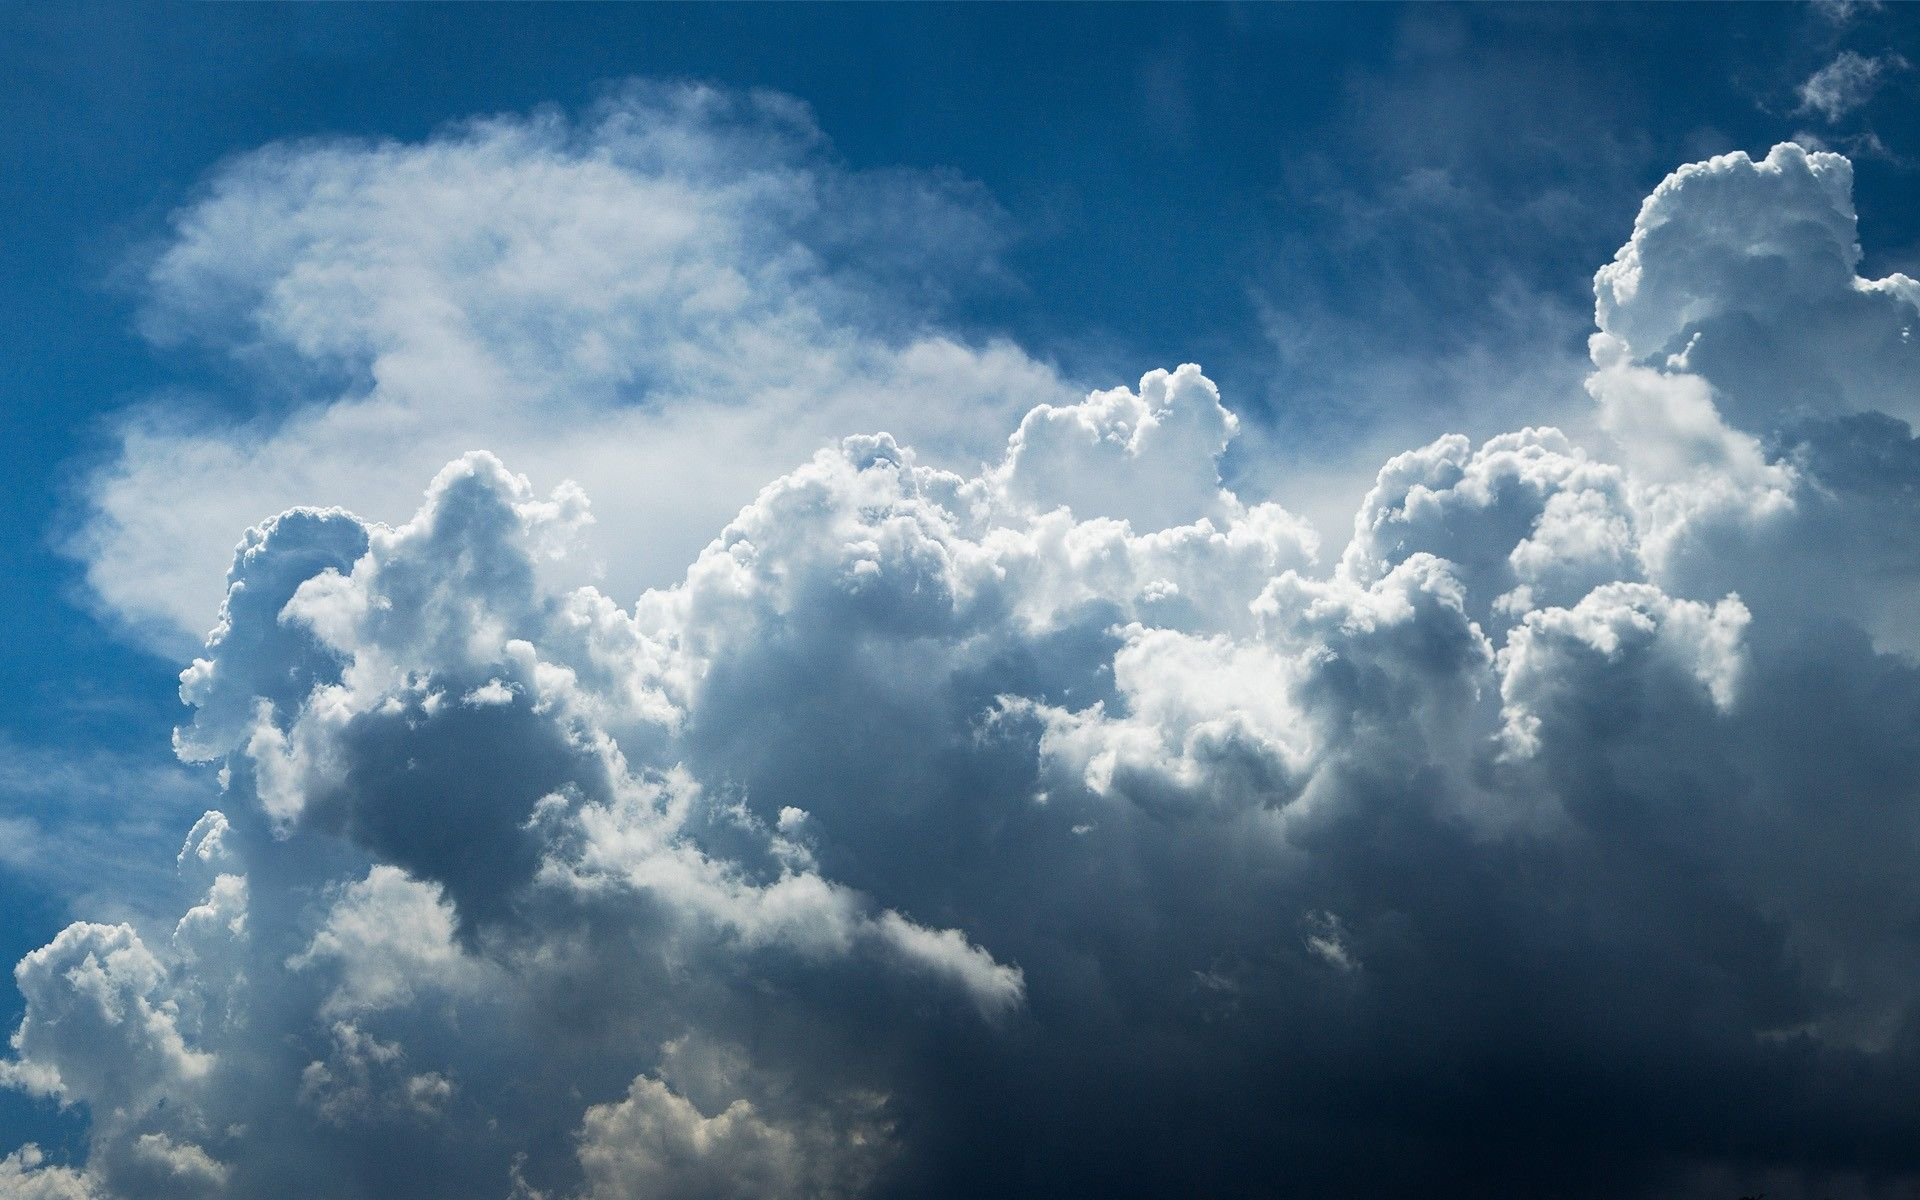 Cloud Wallpapers Hd Free Download Cloud Wallpaper Clouds Sky And Clouds